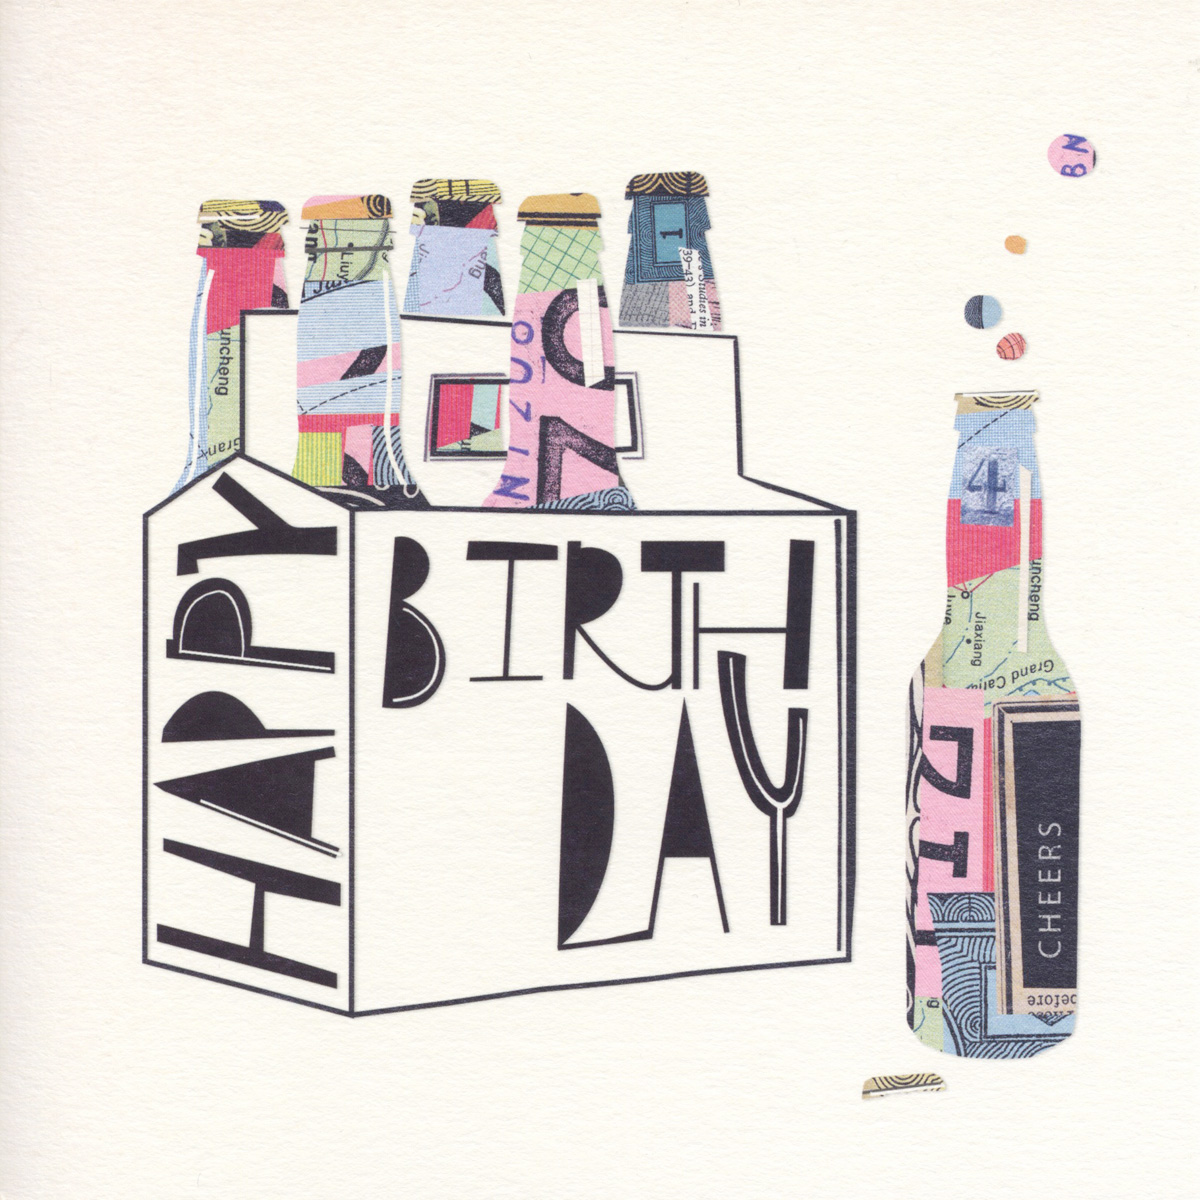 Crate of Beers Birthday Card